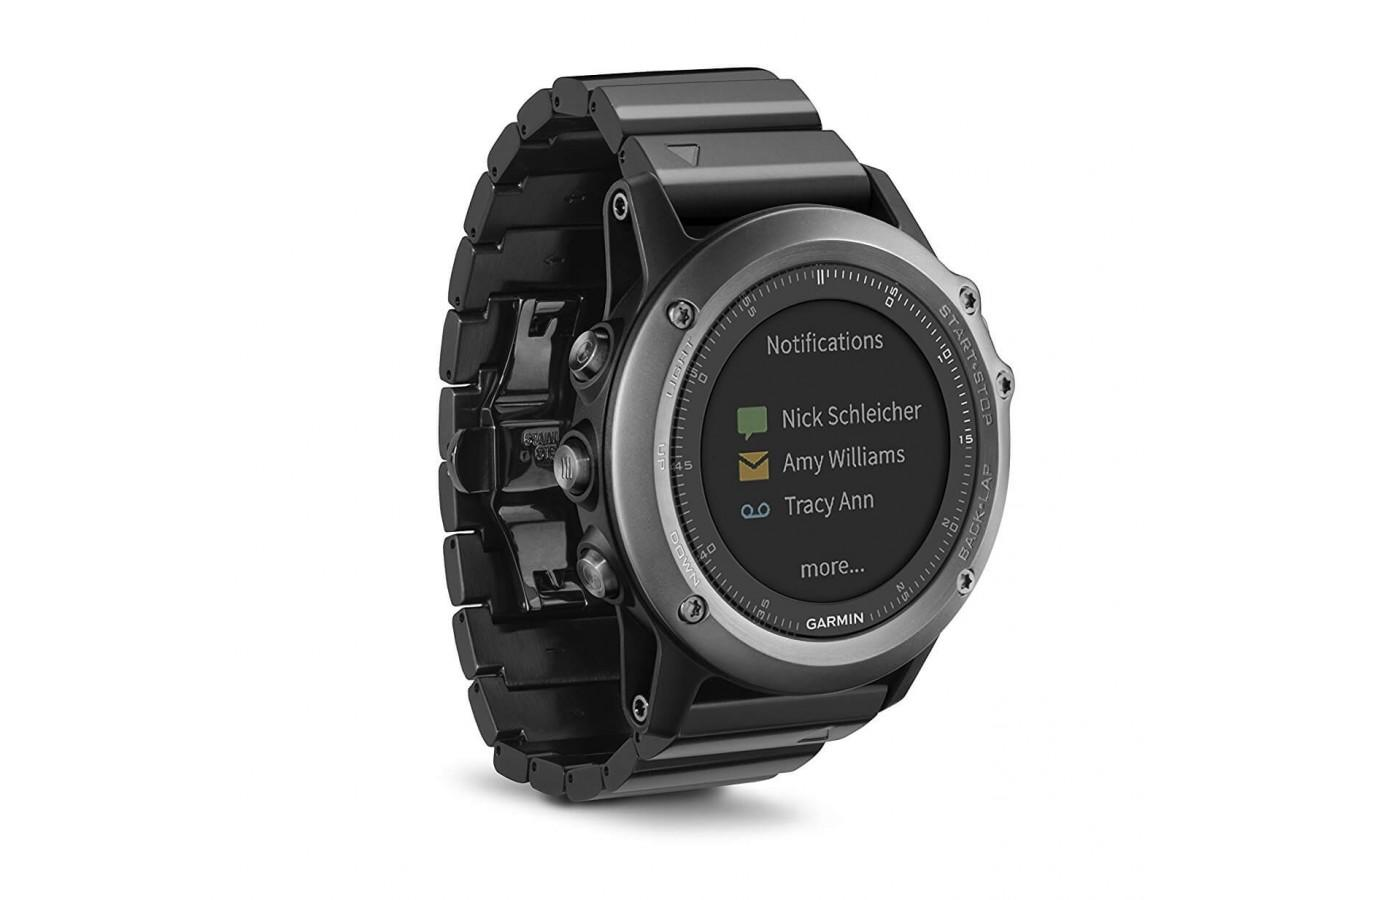 Garmin Fenix 3 Sapphire syncs to your smartphone for notifications